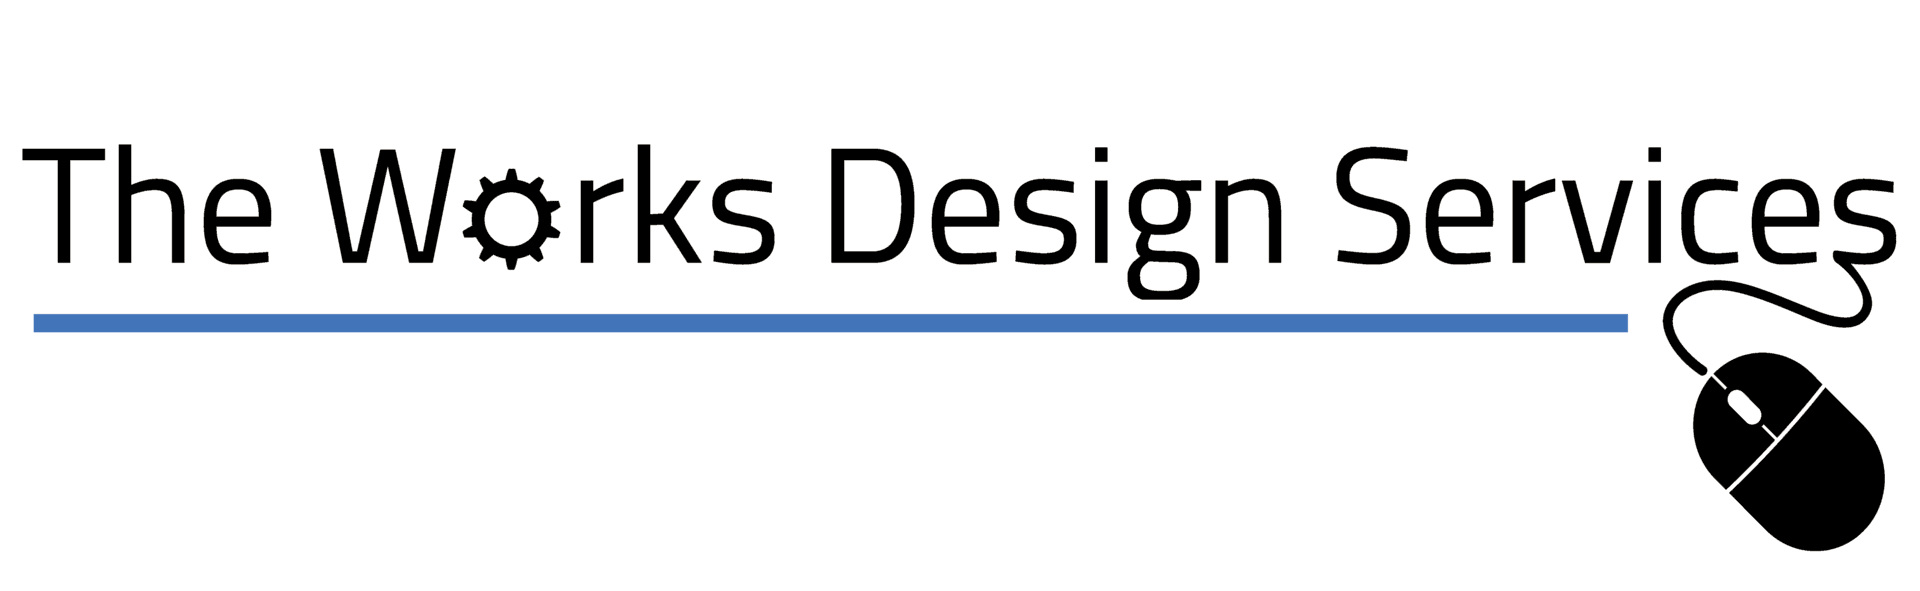 The Works Design Services logo